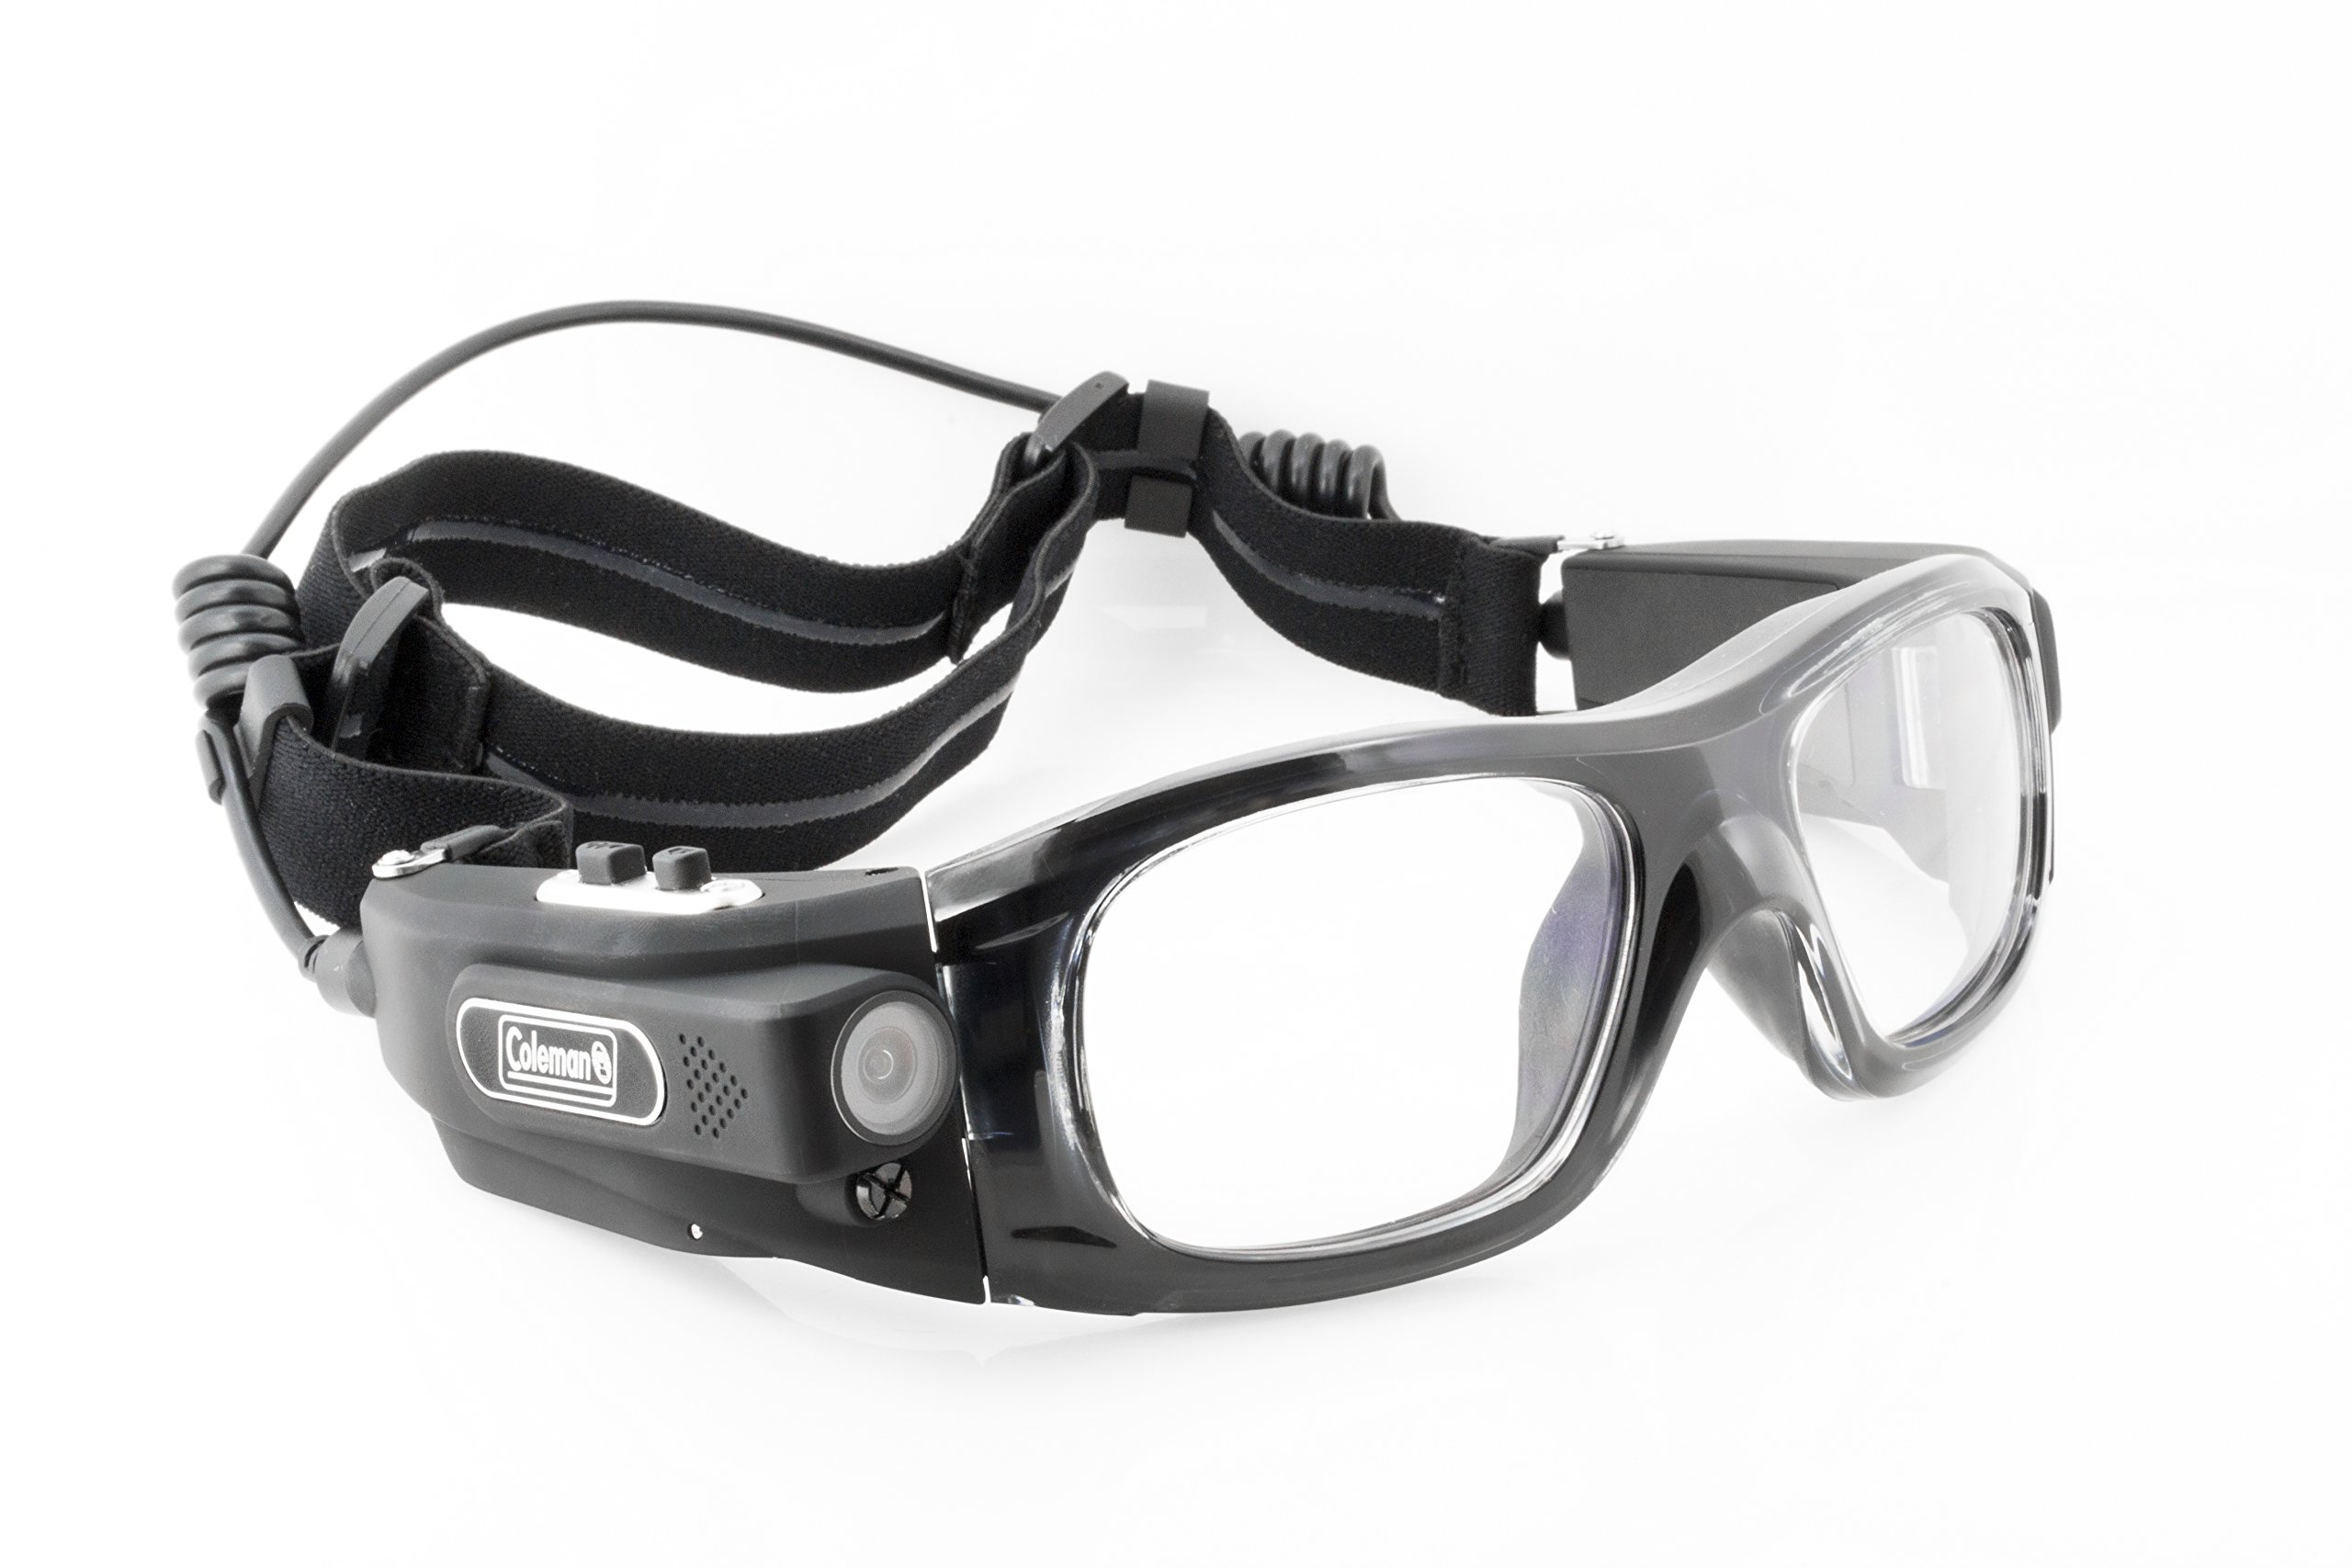 Coleman G5HD-SPORT Vision HD Wearable Sports Safety Goggles with Built-In Video Camera by Coleman